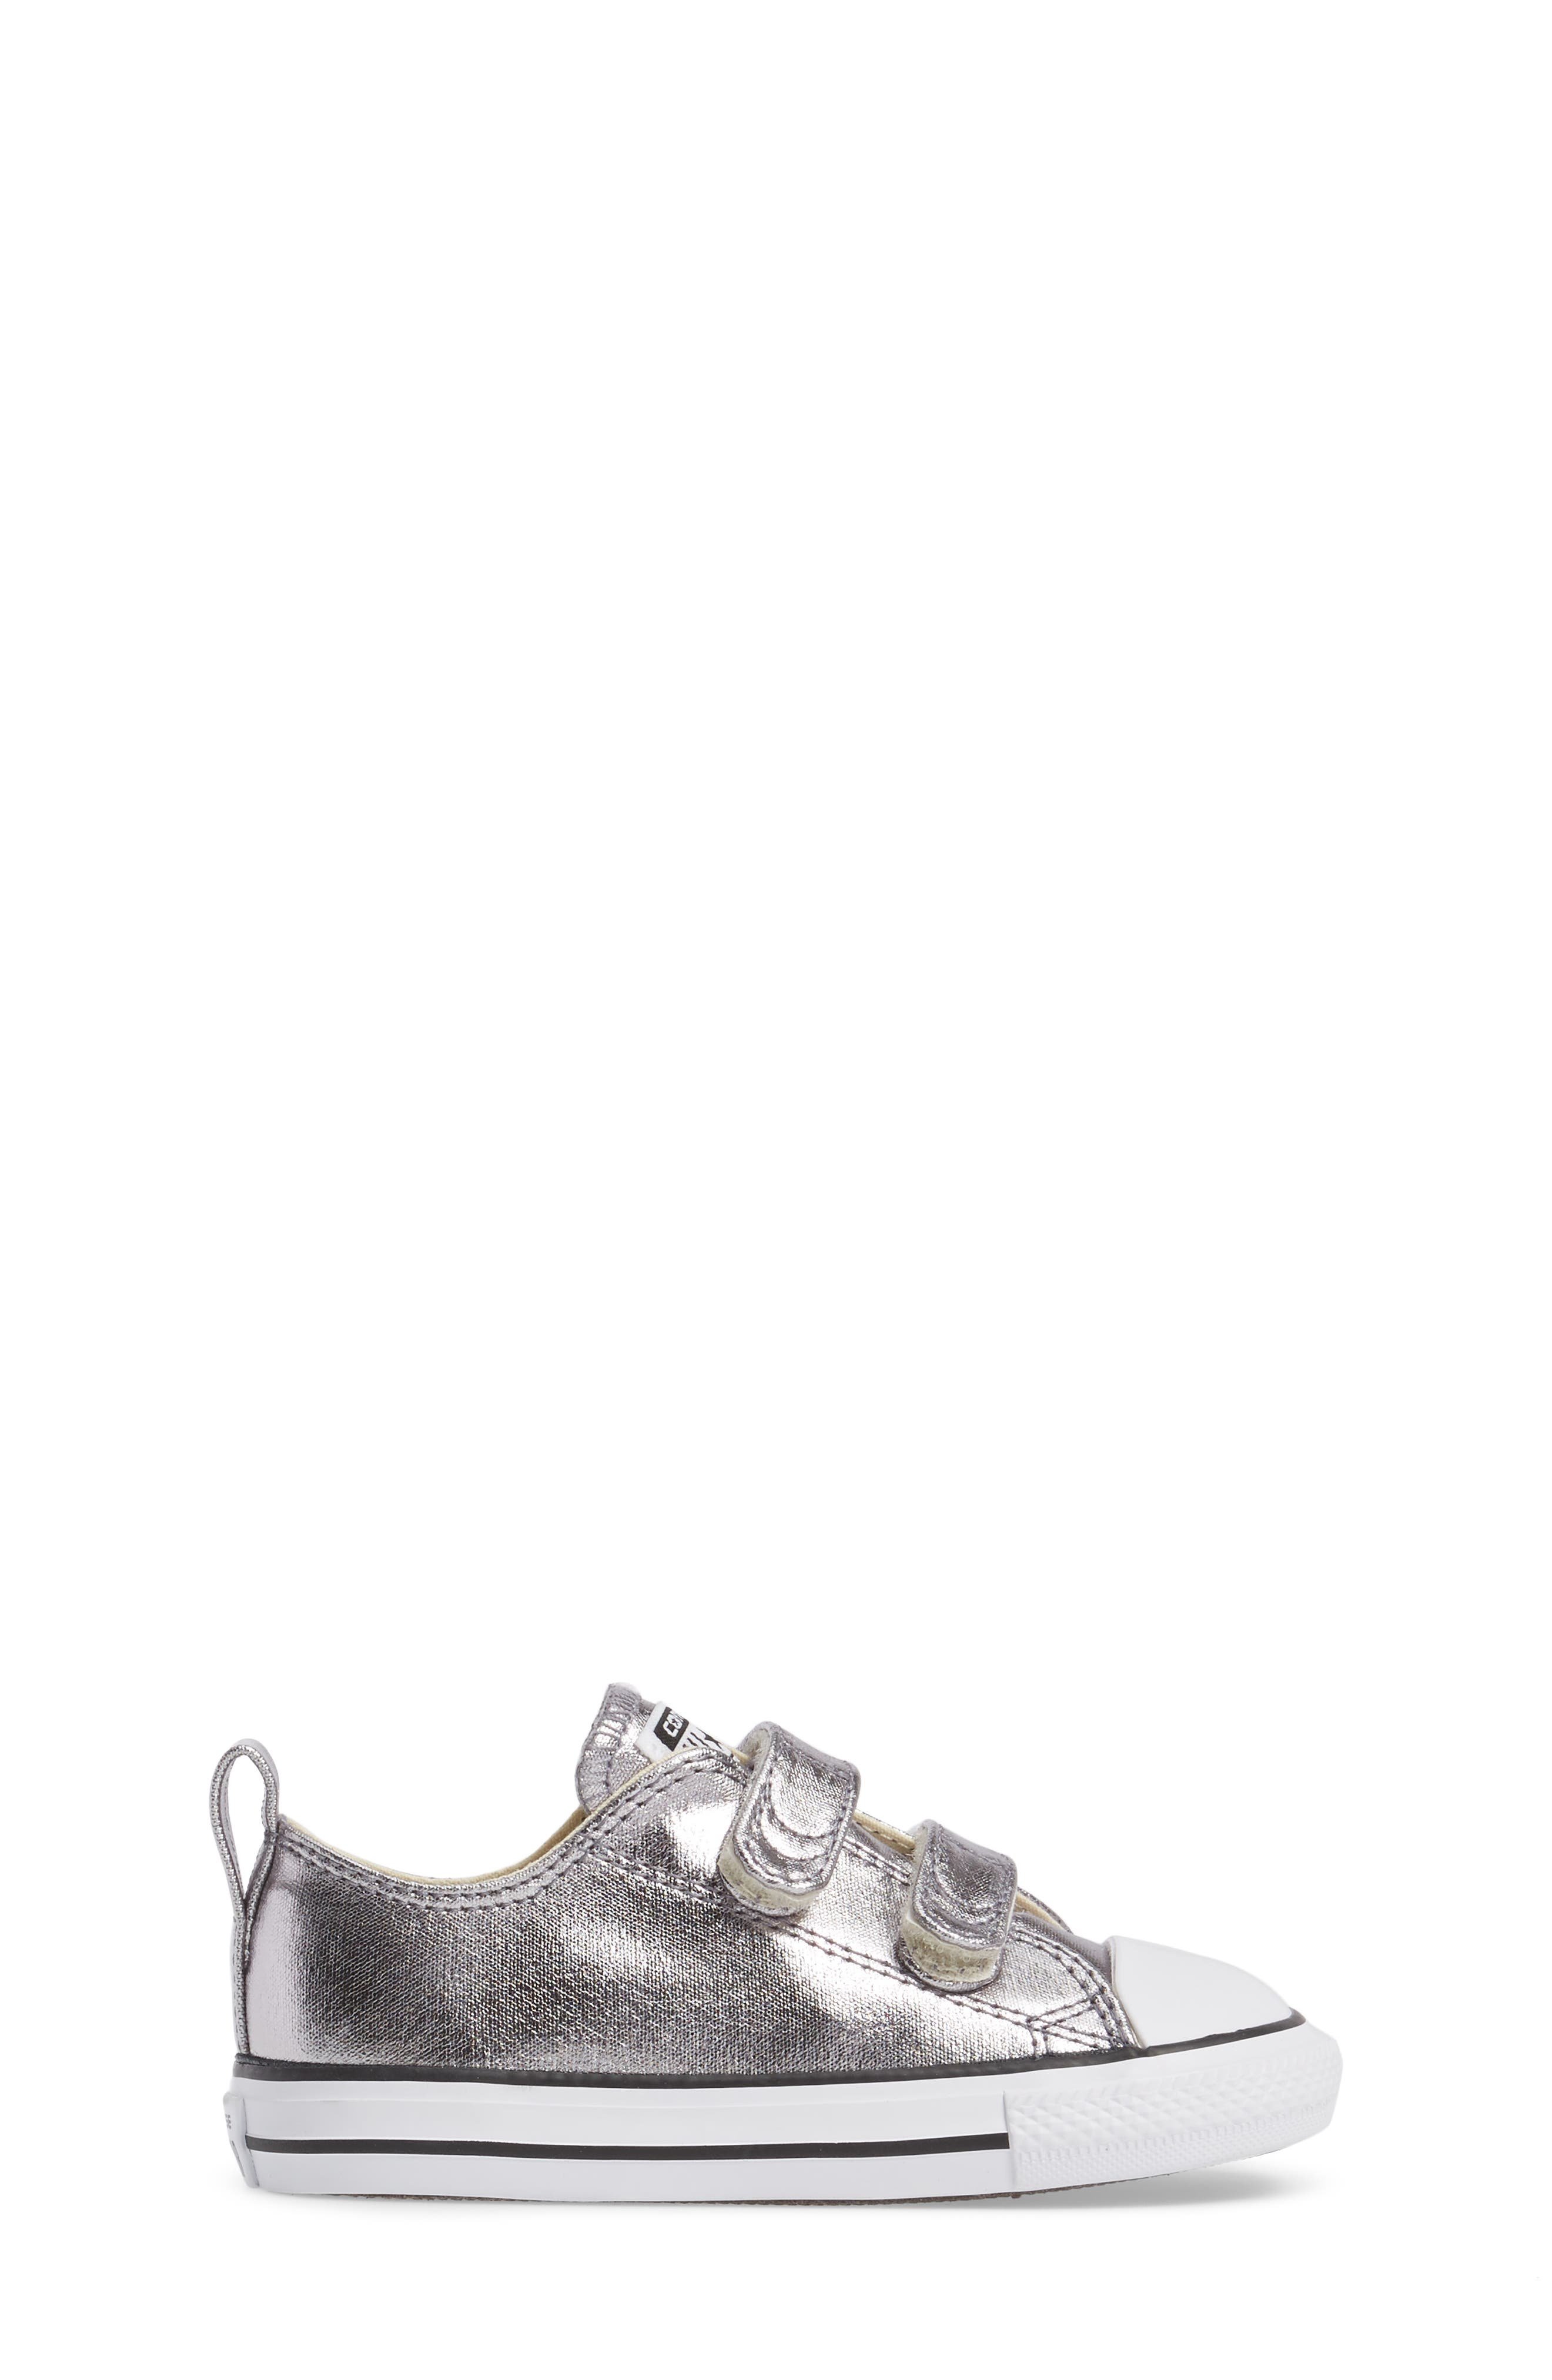 Alternate Image 3  - Converse Chuck Taylor® All Star® Seasonal Metallic Low Top Sneaker (Baby, Walker & Toddler)